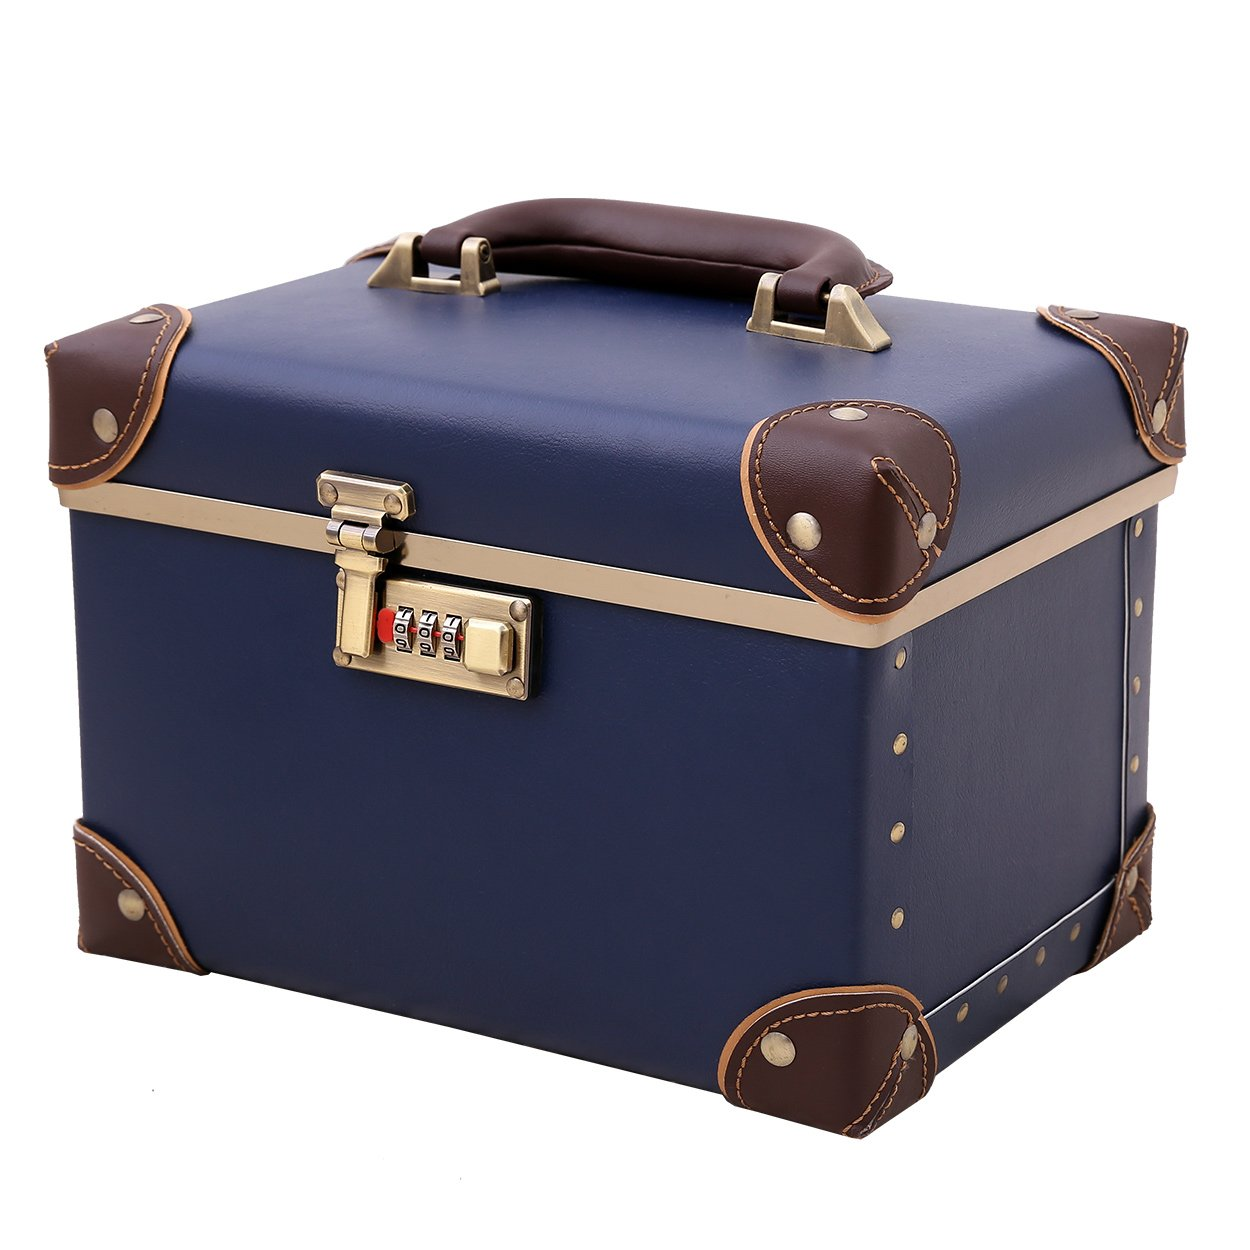 ffbe87508324 Portable Makeup Train Case Double Layer Cosmetic Bags Leather Toiletry Case  for Women Retro Blue 10